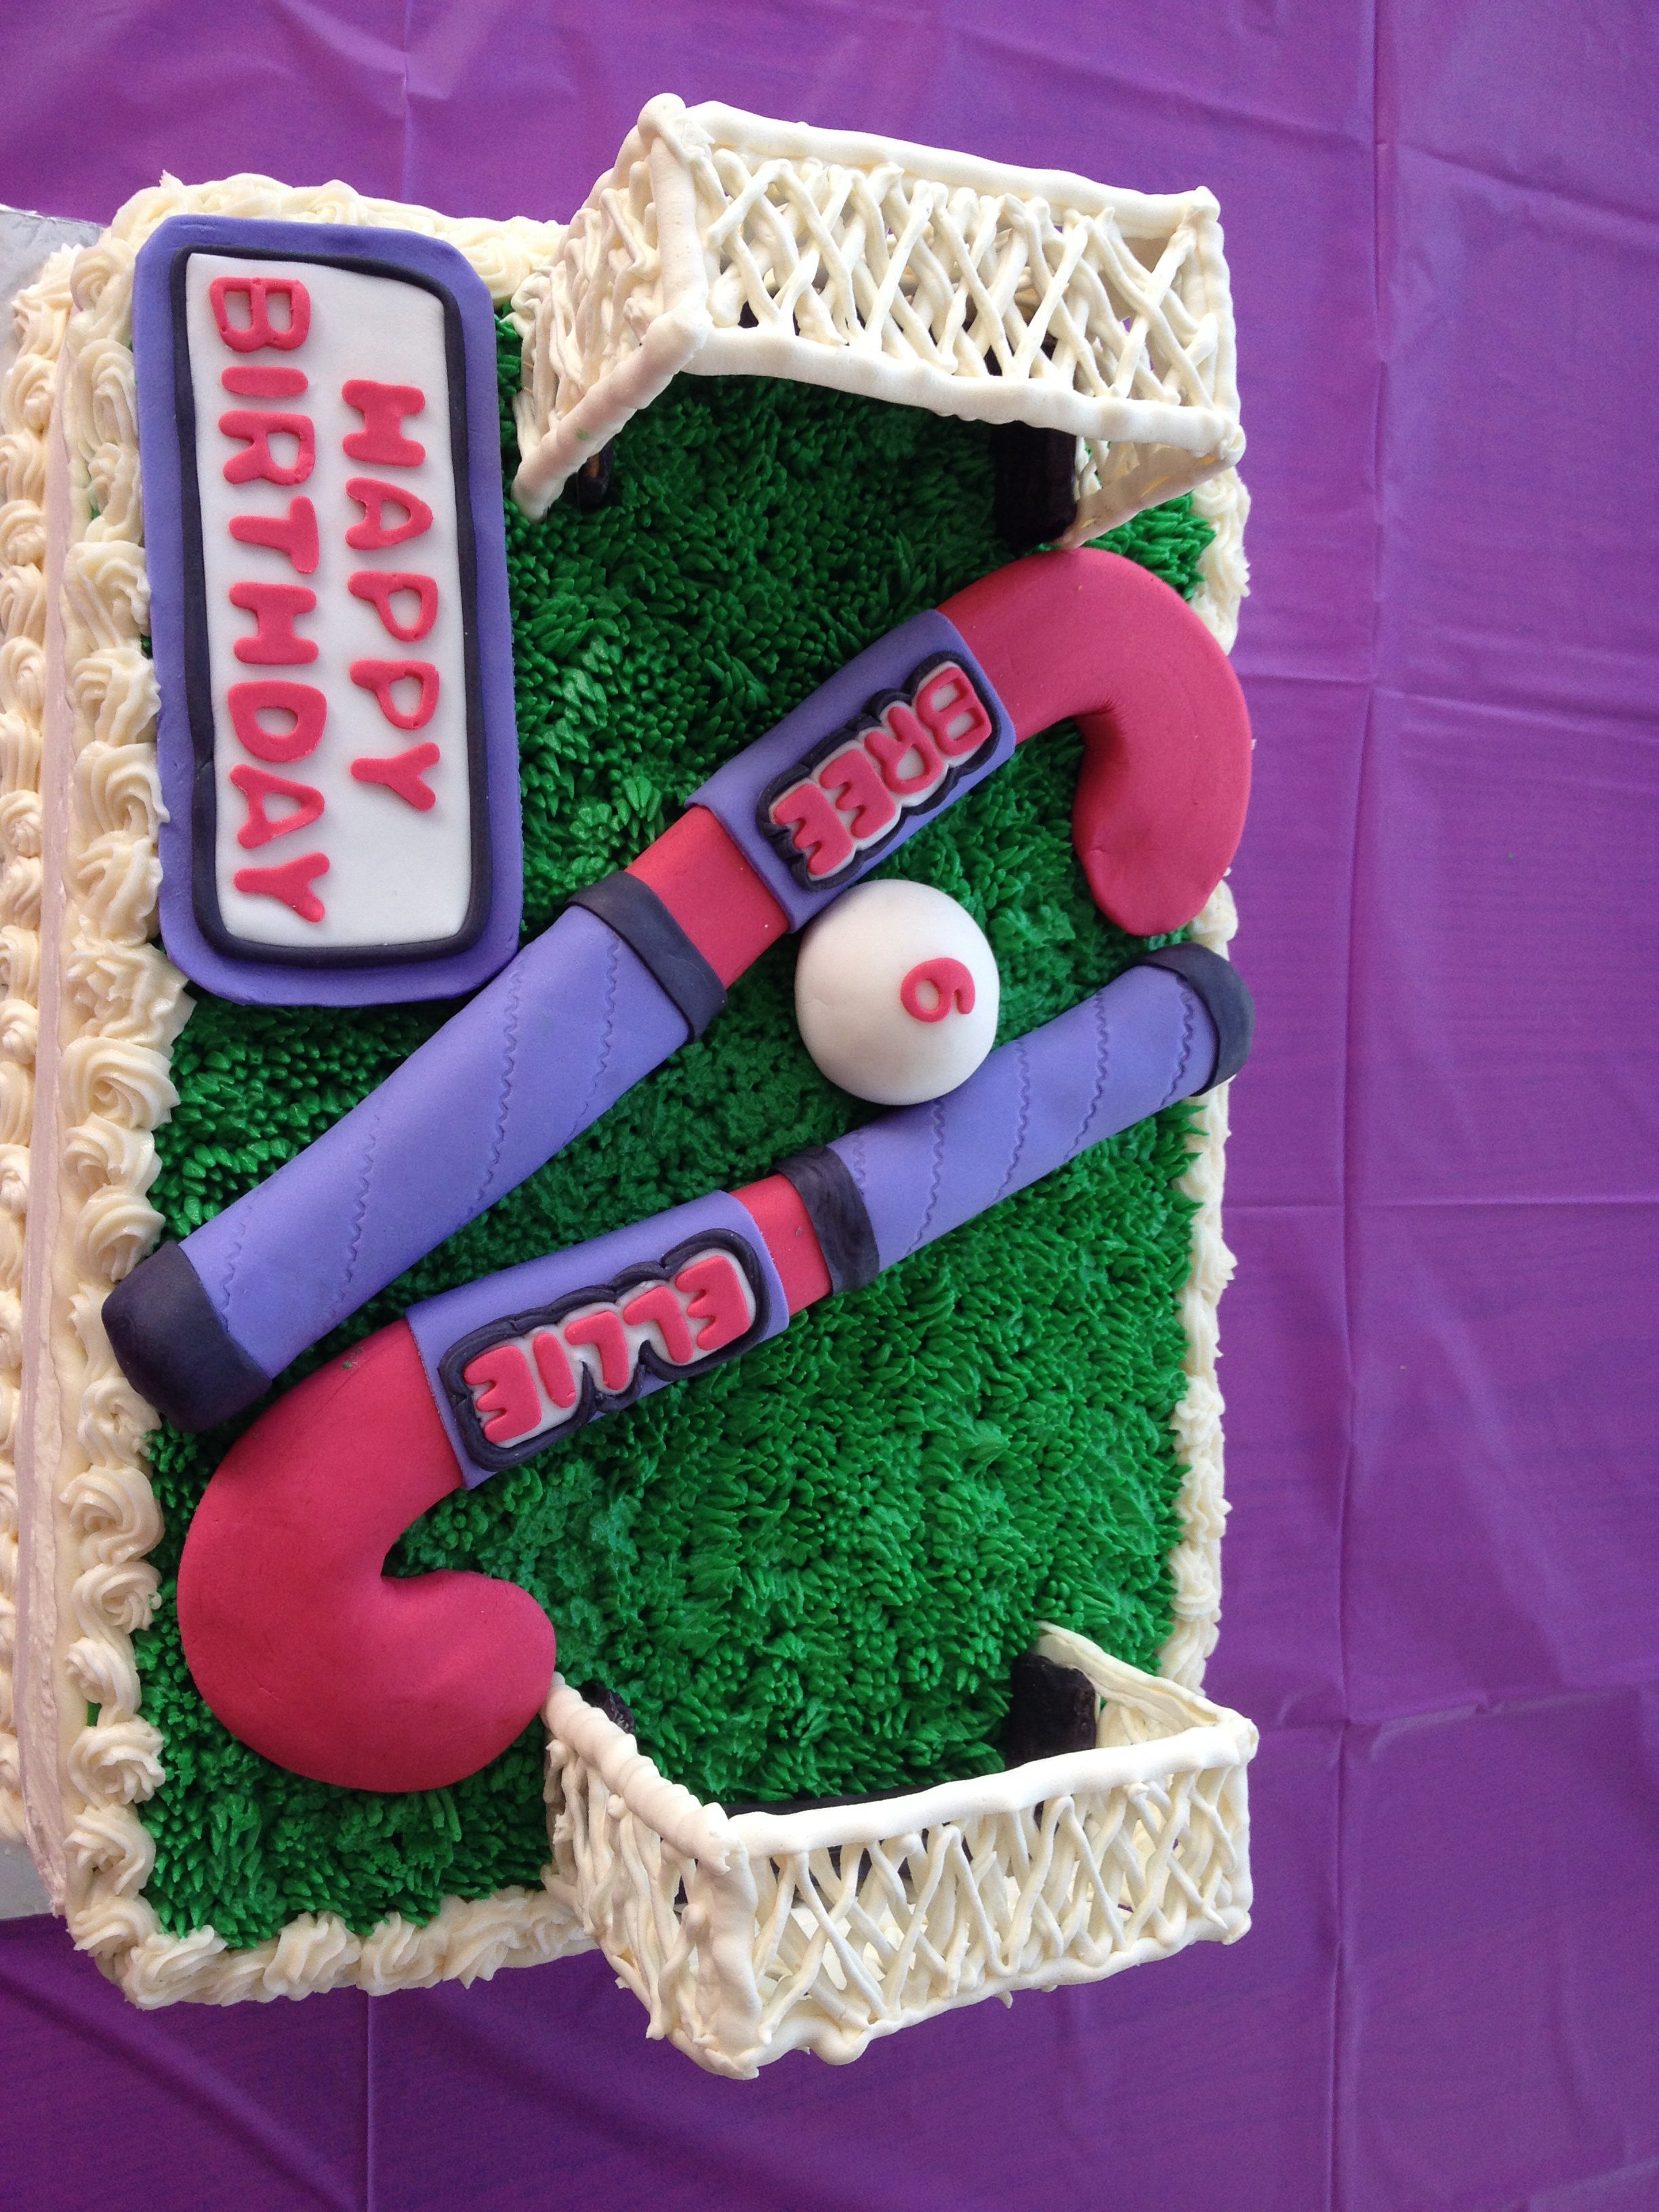 Field hockey birthday cake for Bree Ellies hockey pool party